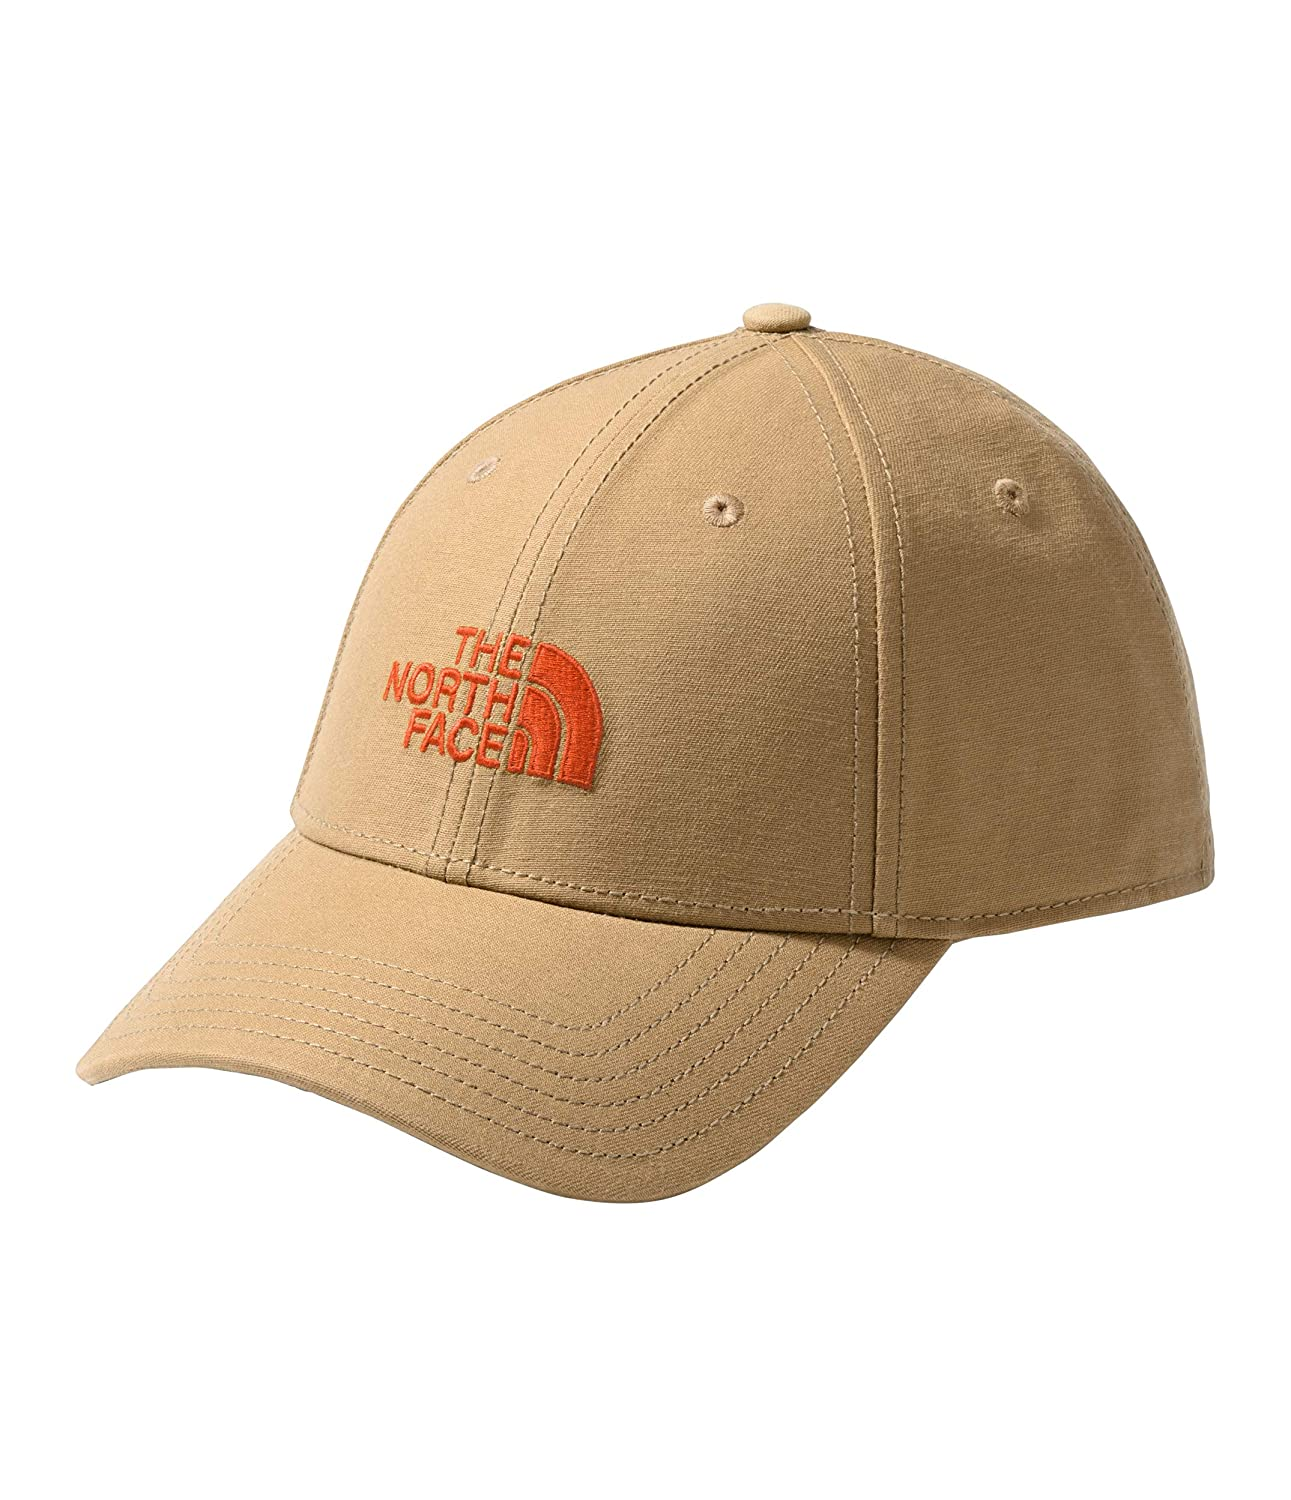 eeeaa0a0c The North Face Unisex 66 Classic Hat